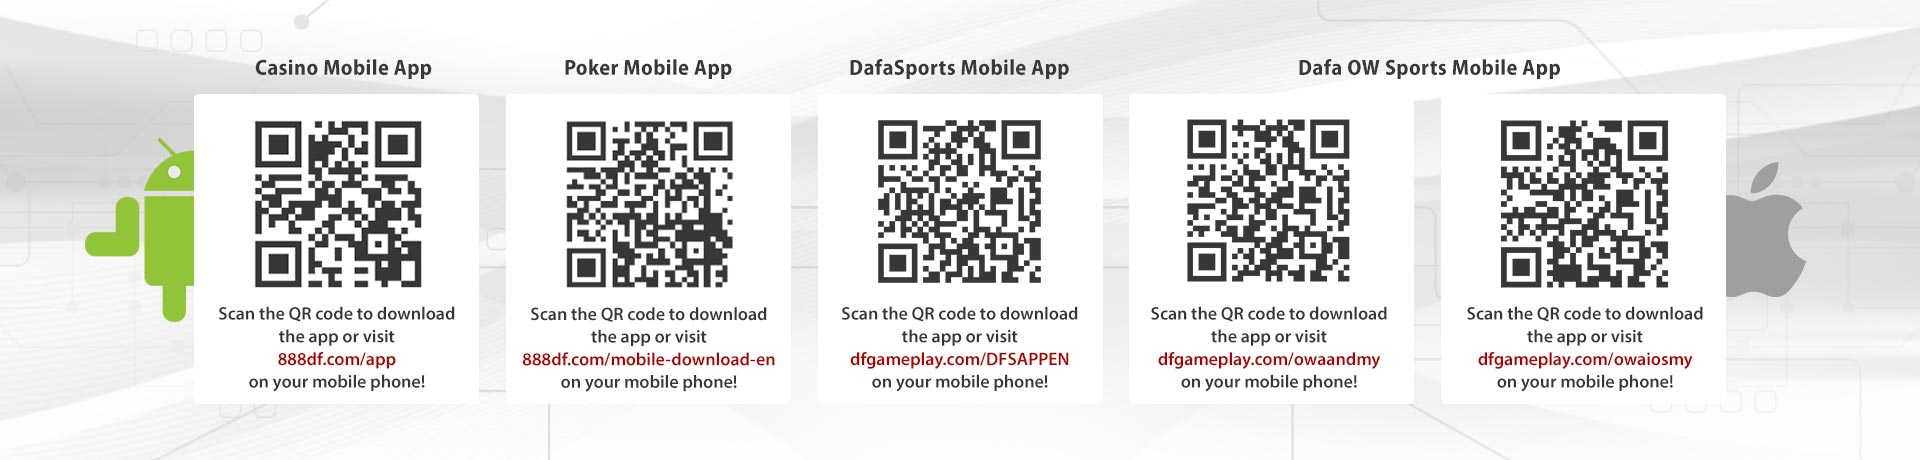 Dafabet India offers the best mobile betting experience